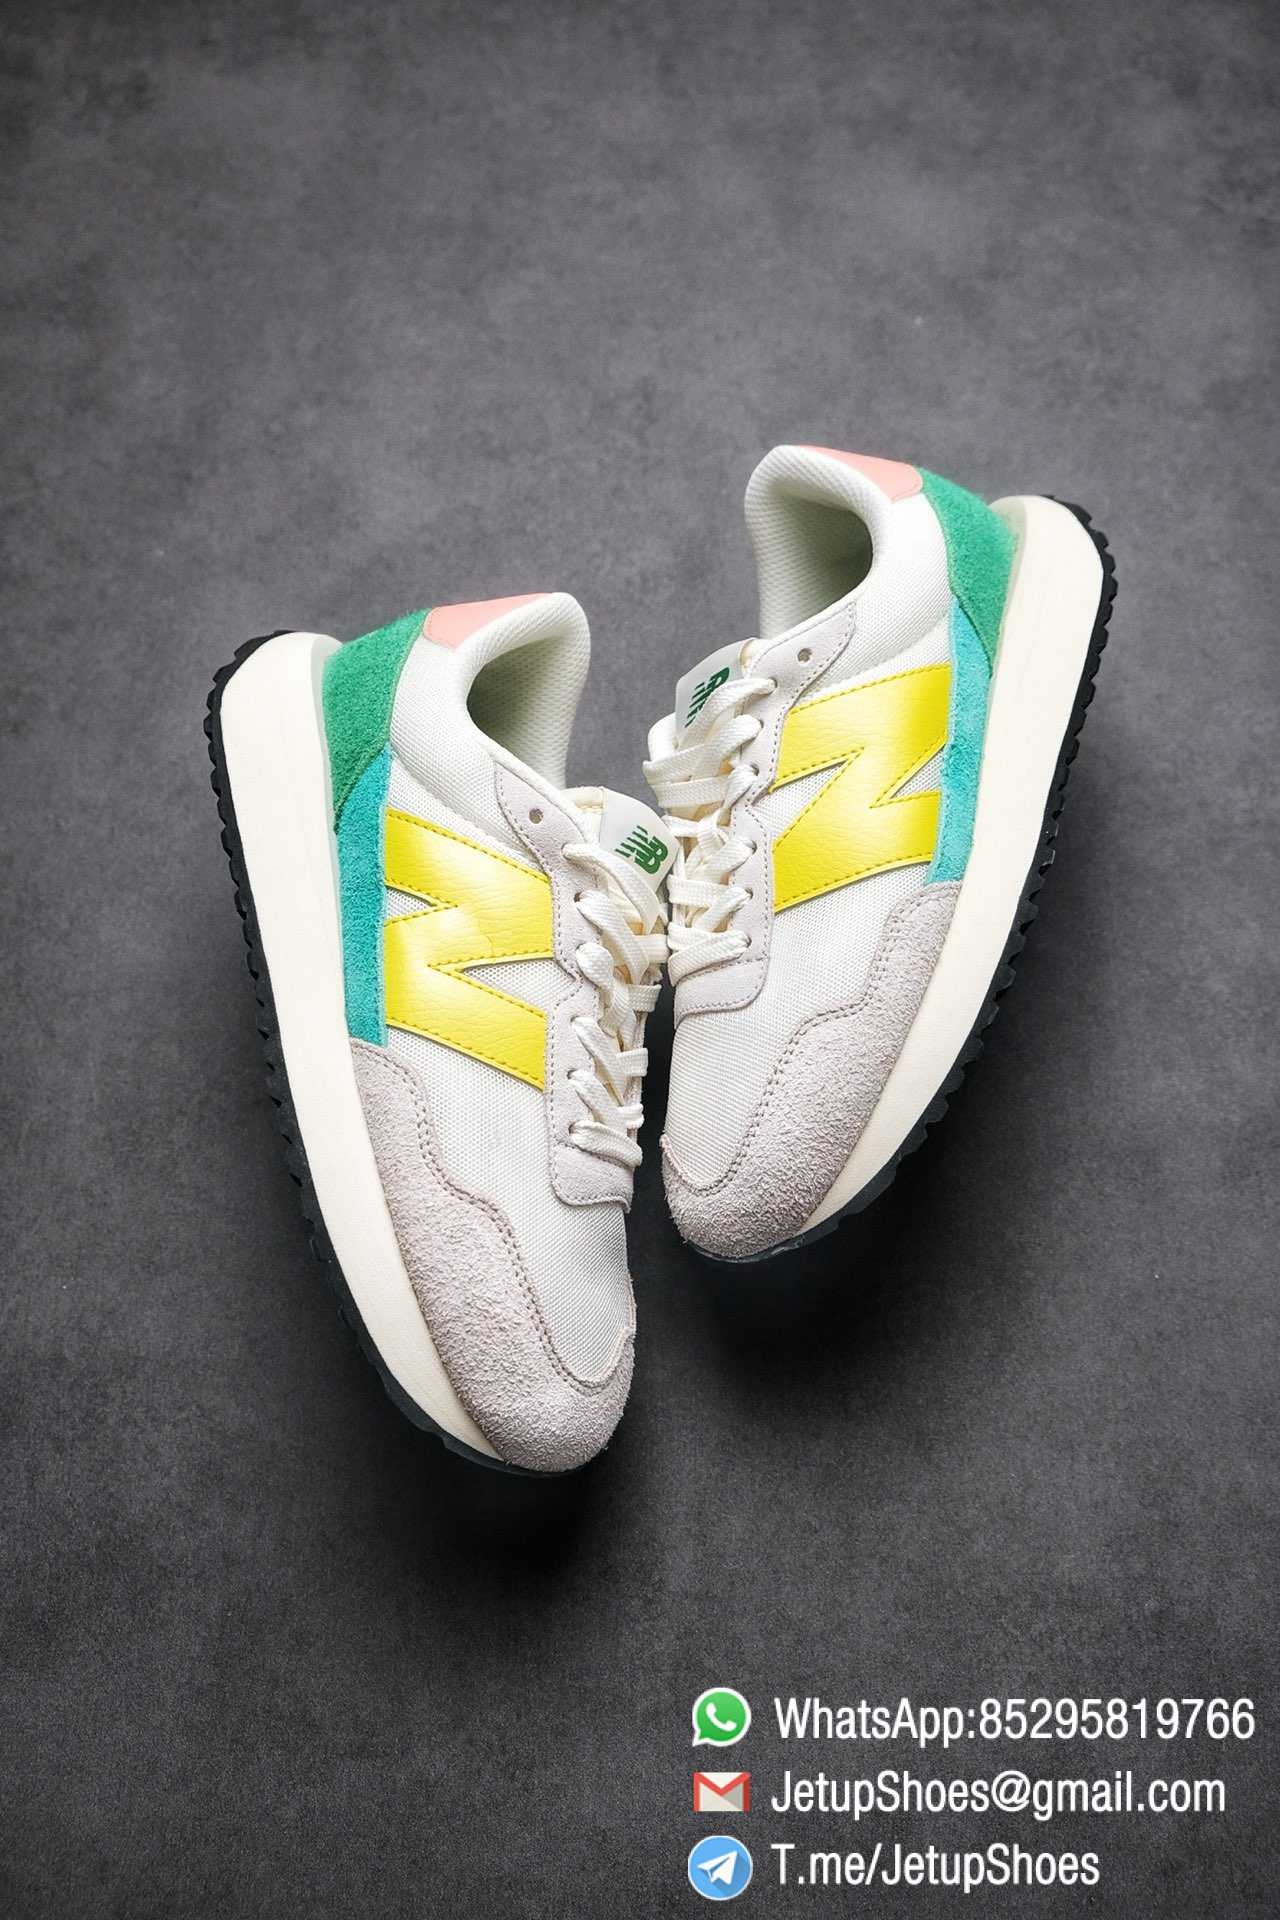 Best Replica New Balance 237 Light Grey Yellow Green Pink Multi Color SKU MS237AS1 High Quality Running Shoes 03